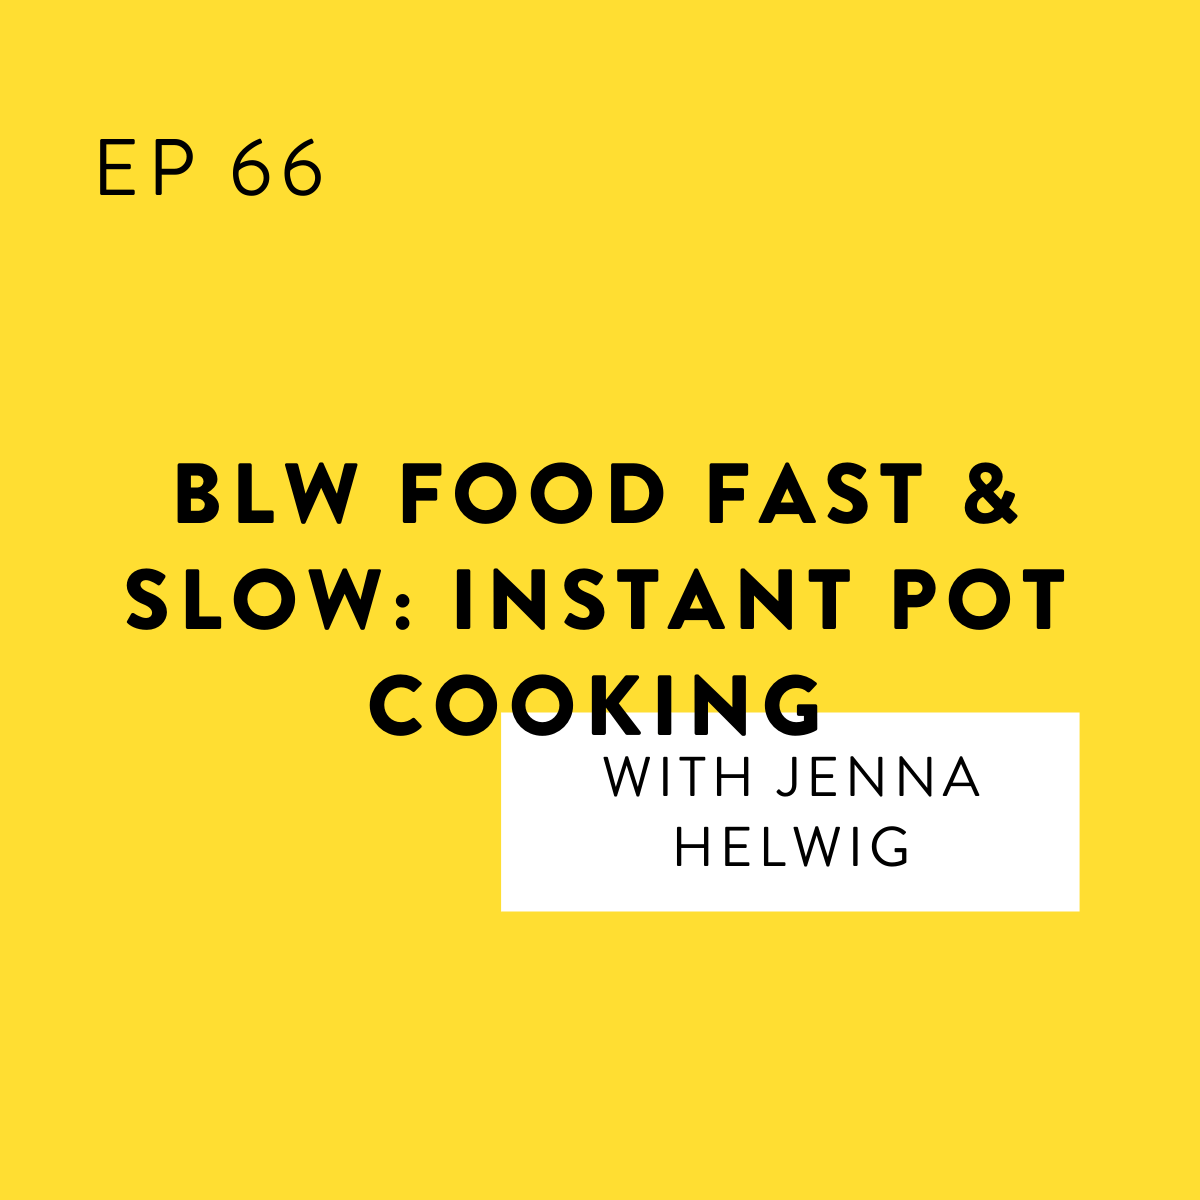 BLW Food Fast & Slow: Instant Pot Cooking with Jenna Helwig